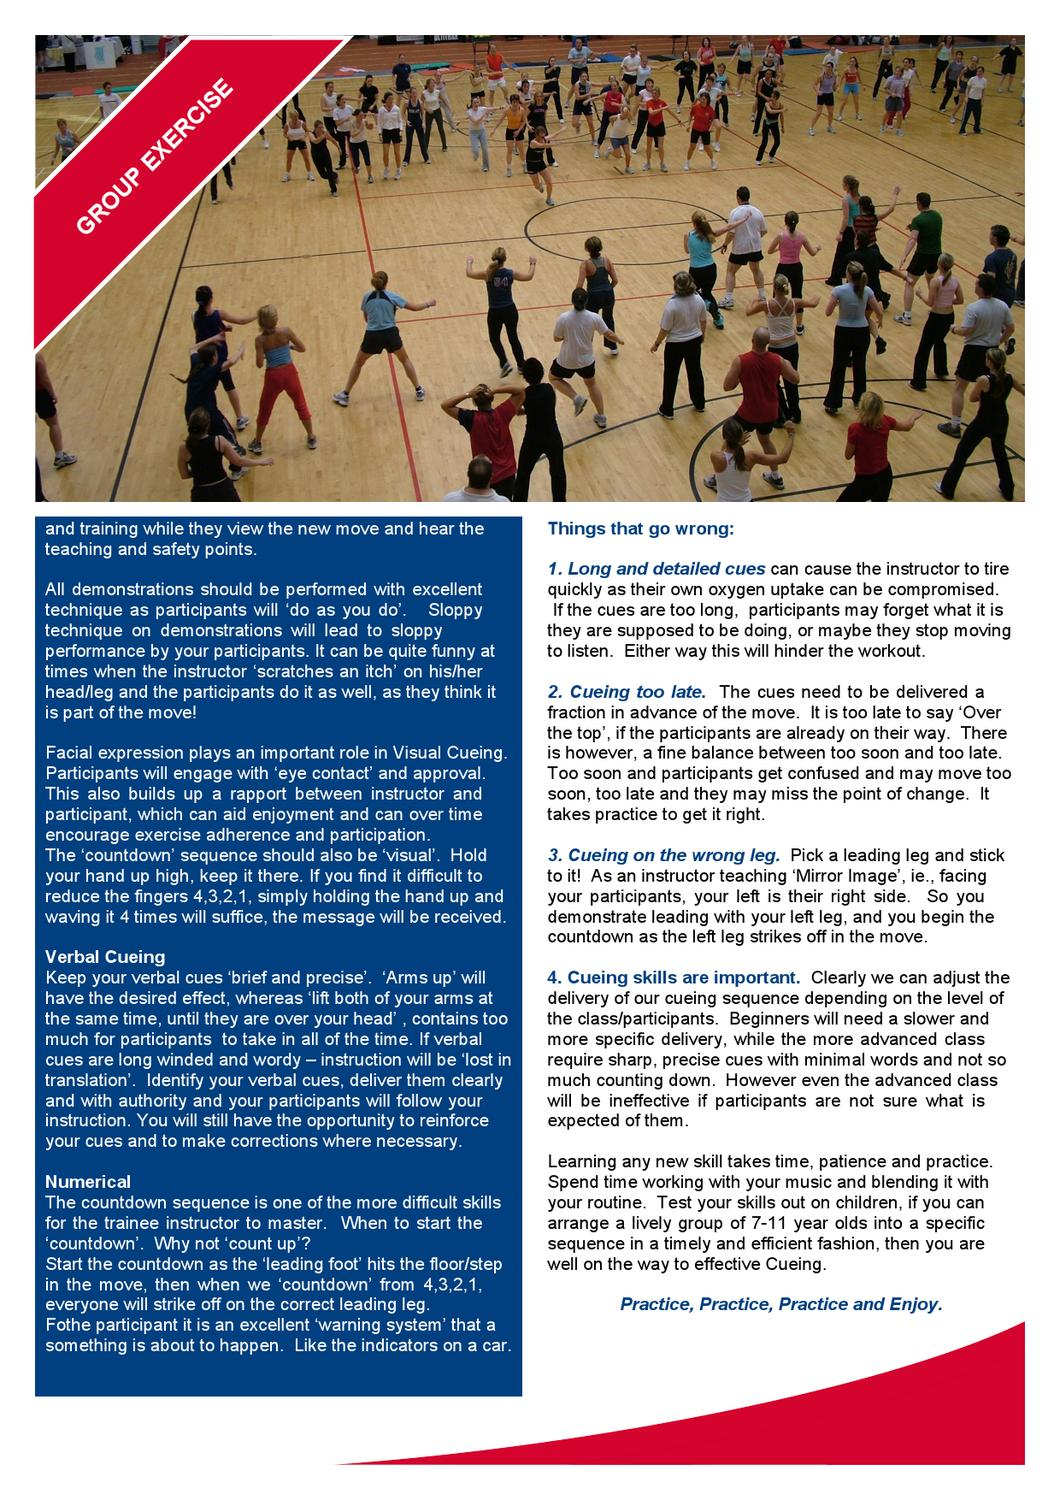 NCEF National Fitness News Ezine May 2013 by National Council for